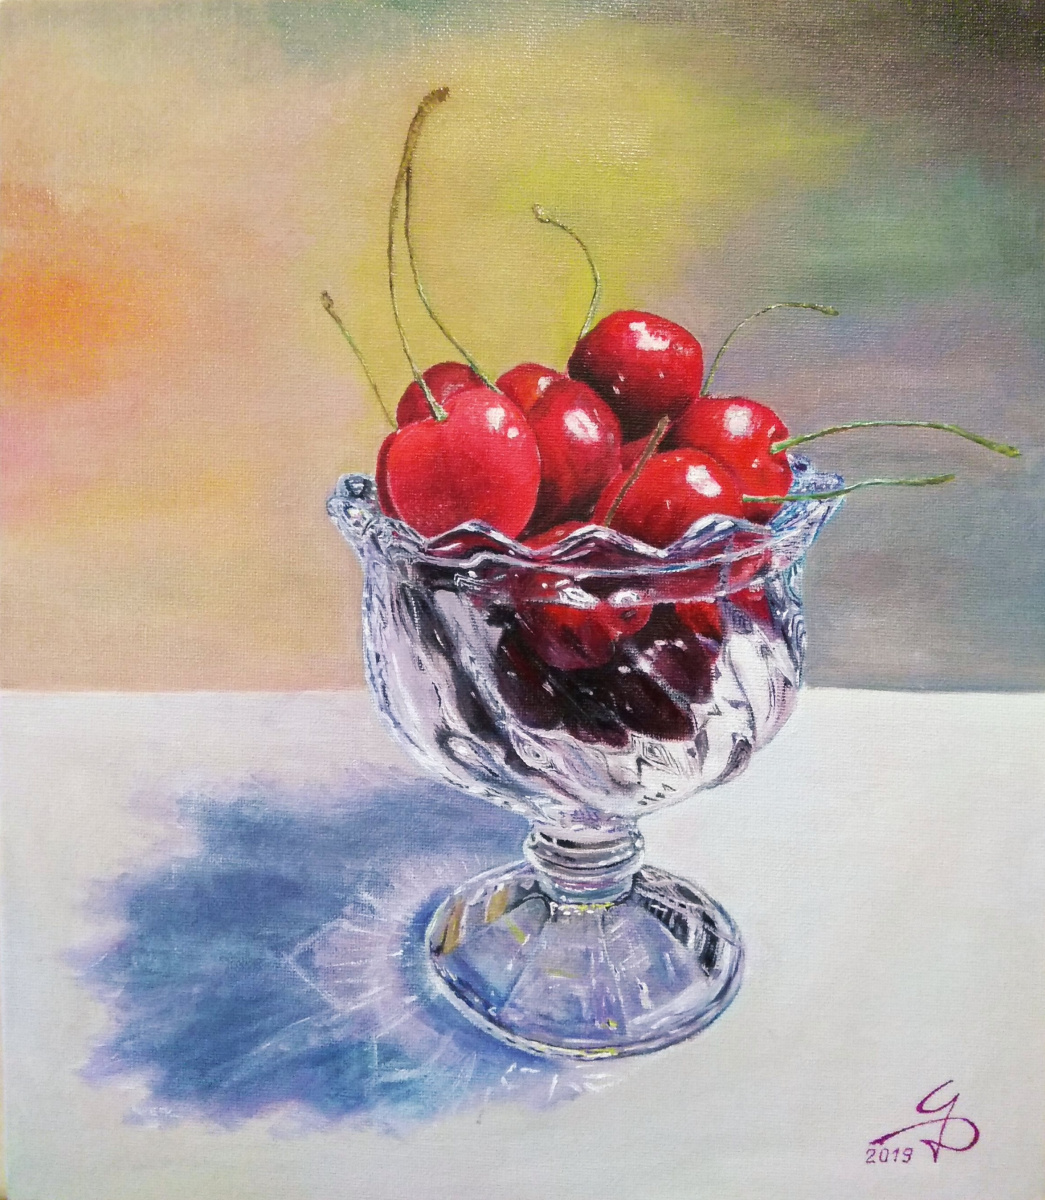 Dmitry Alexandrovich Tsvetaev. Cherry in a vase